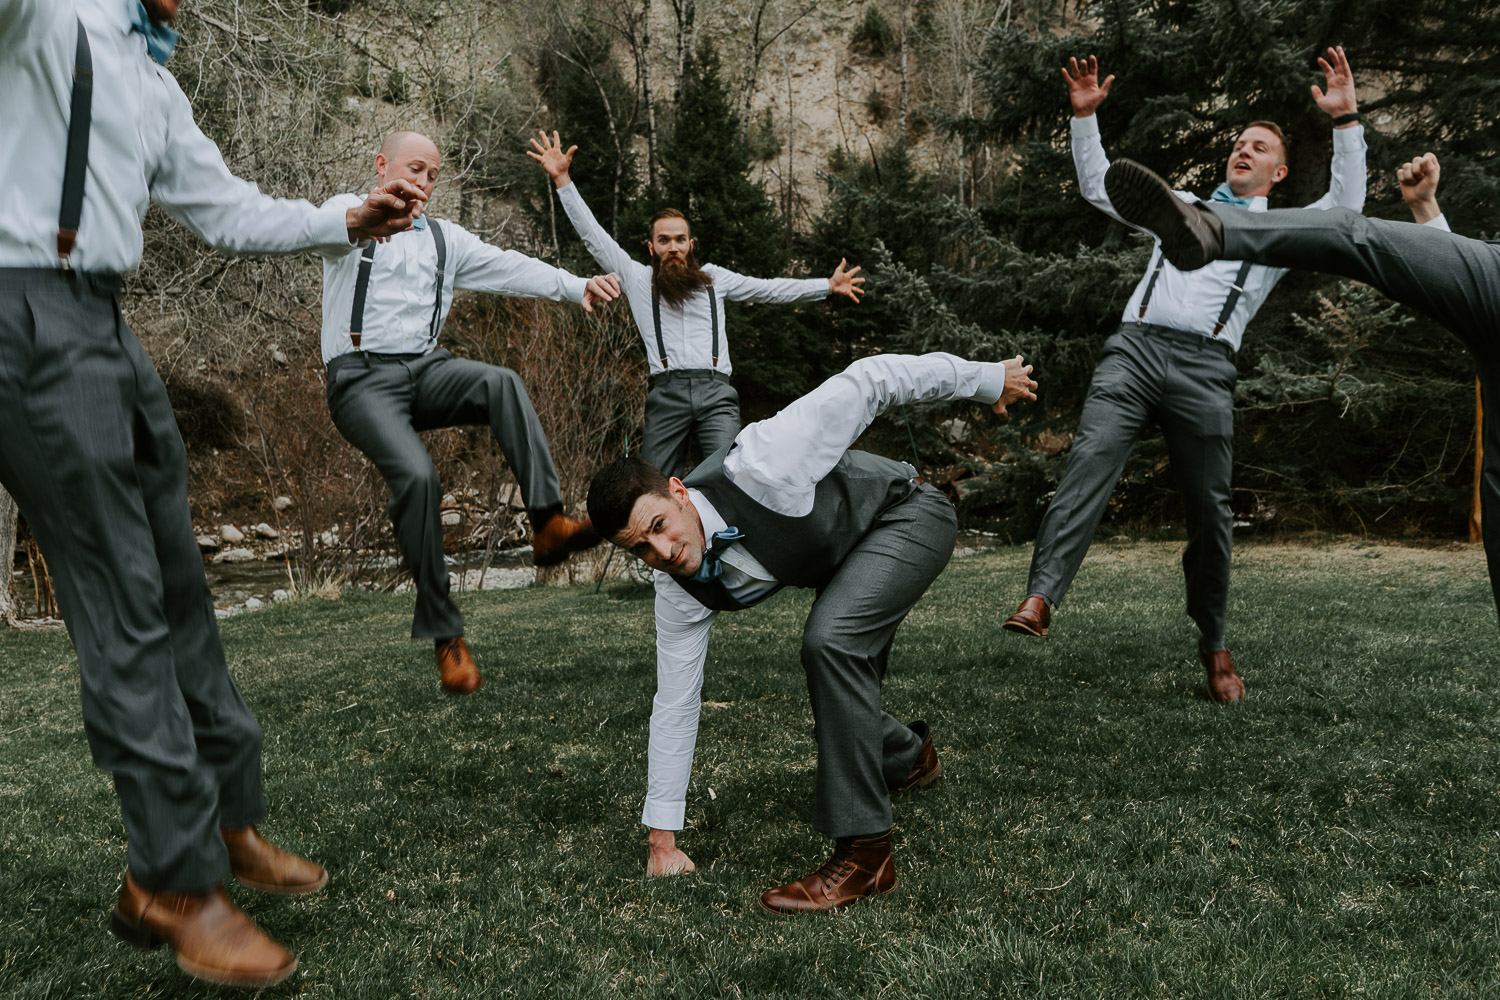 Colorado Wedding, Colorado Wedding Photographer, Mount Princeton Hot Springs, Buena Vista, Elopement Photography, groomsmen